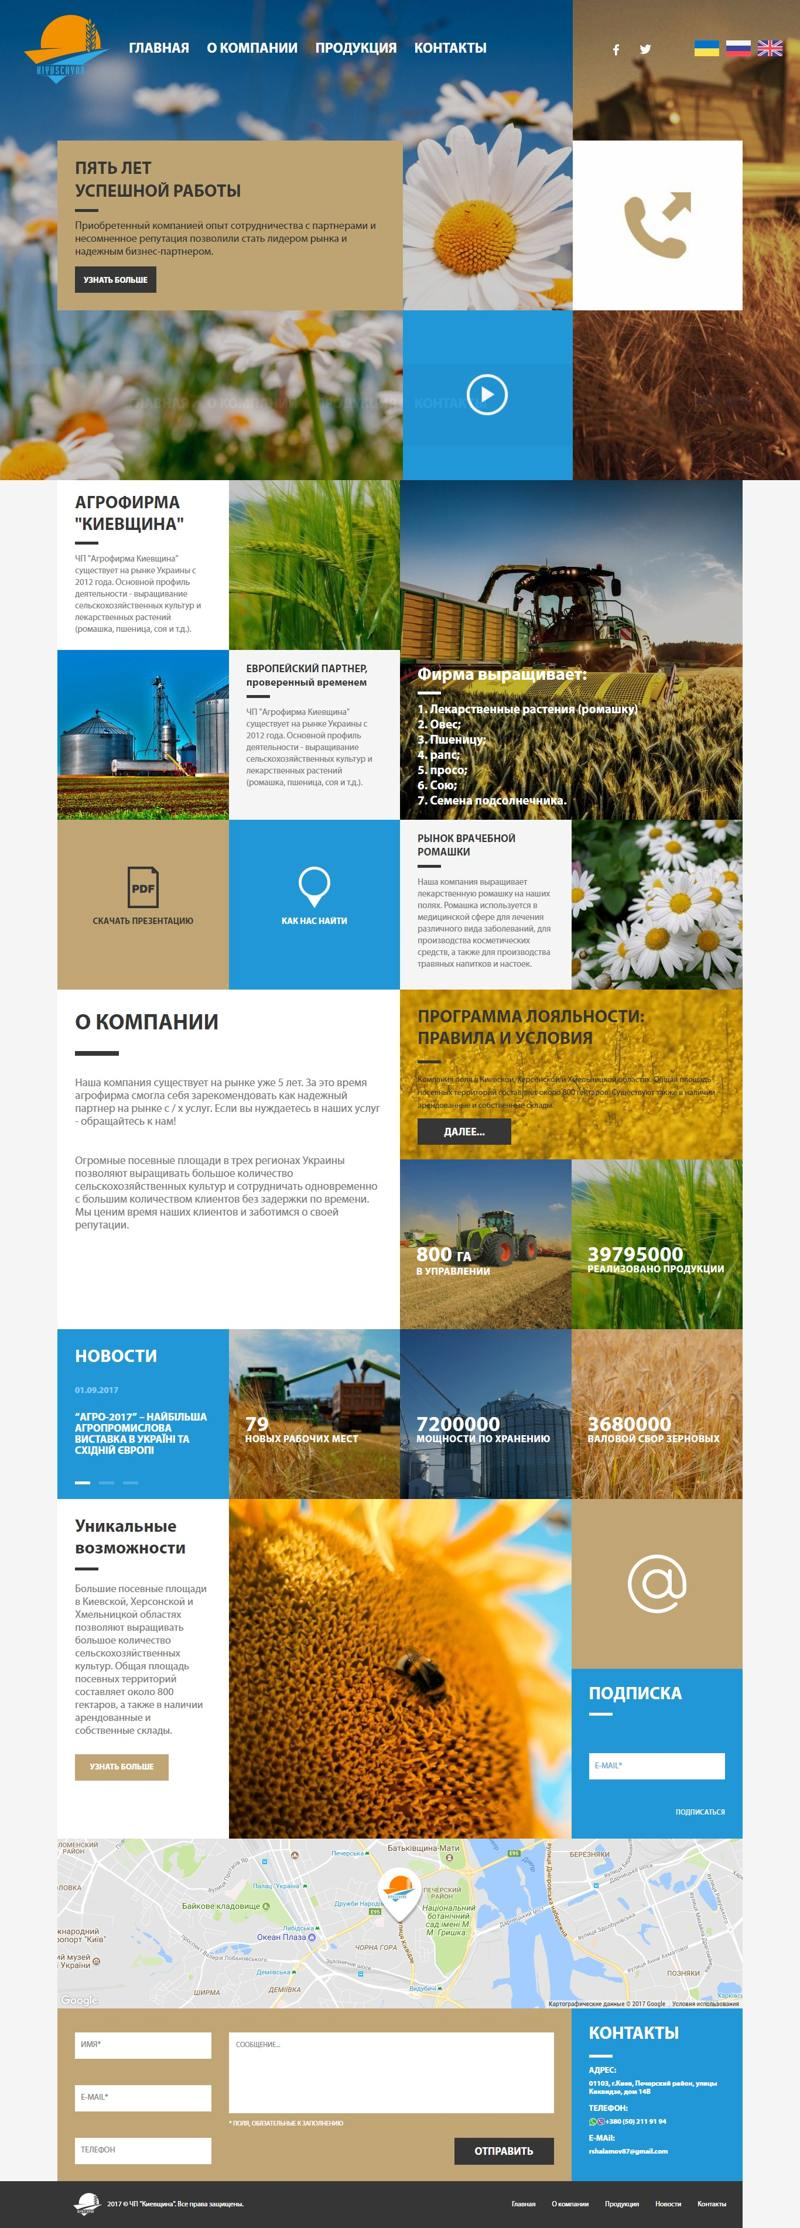 AGROFIRM KIEVSCHINA phone view